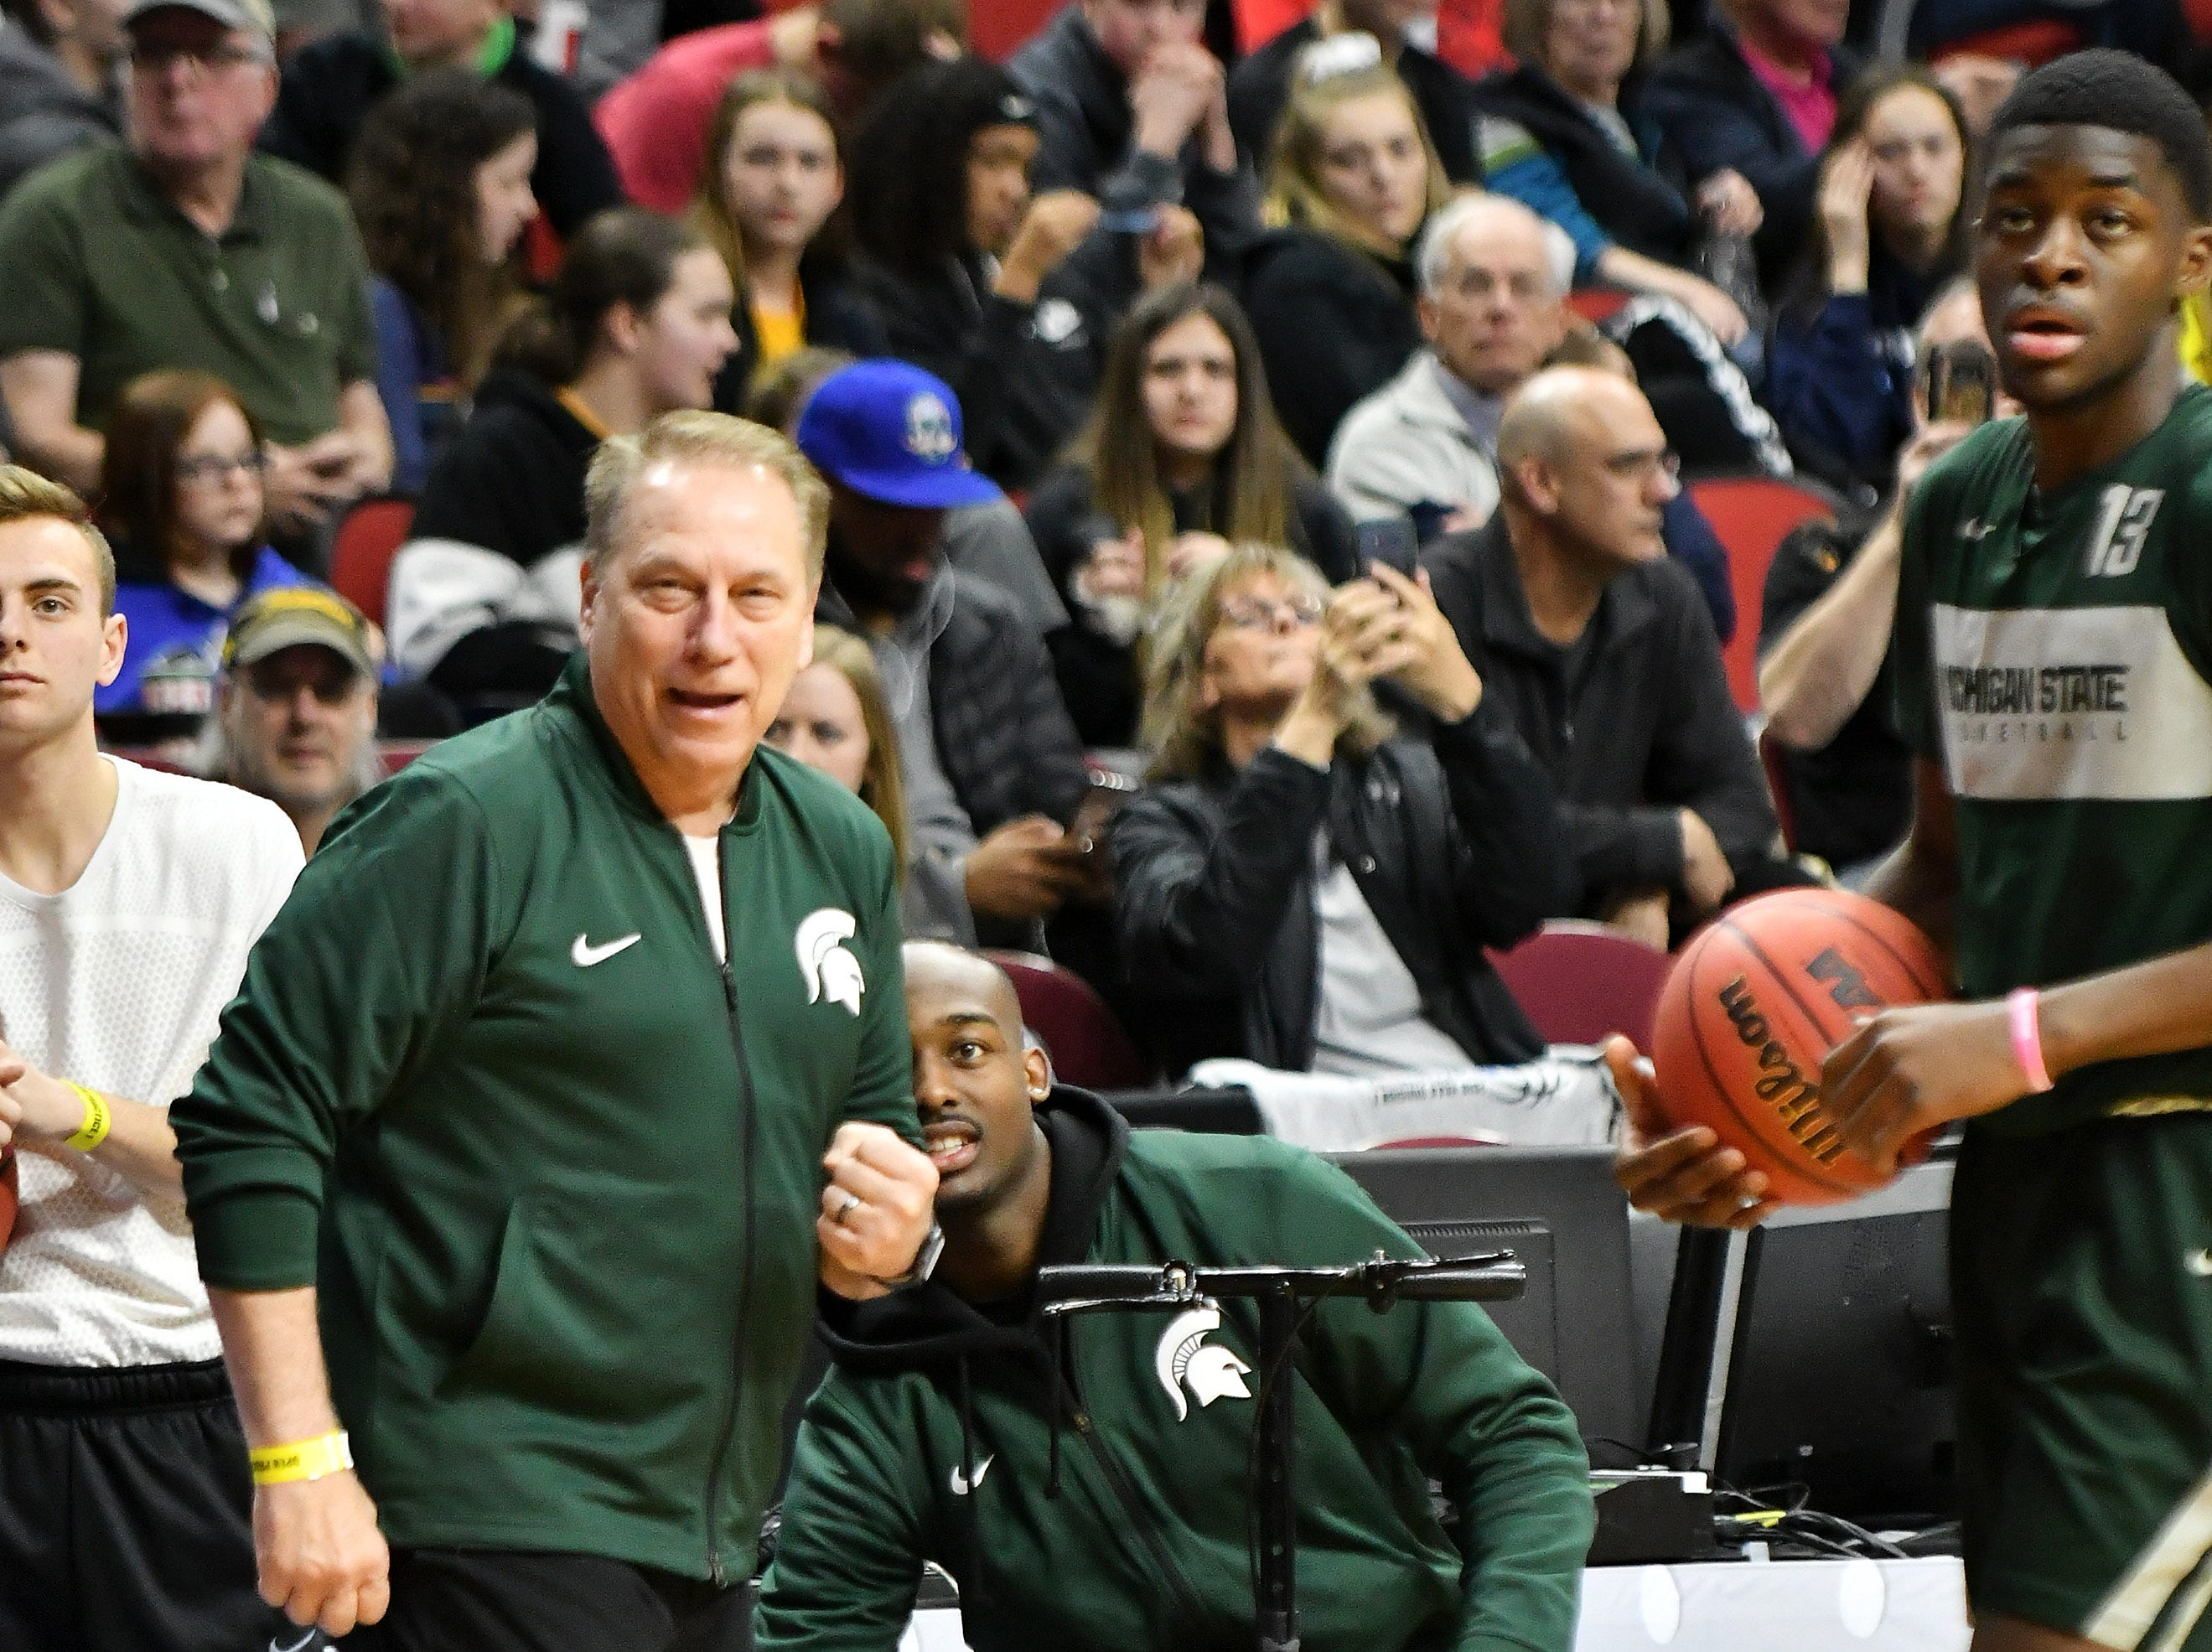 Michigan State head coach Tom Izzo watches a shot near injured Michigan State guard Joshua Langford on scooter at the Spartans' practice.